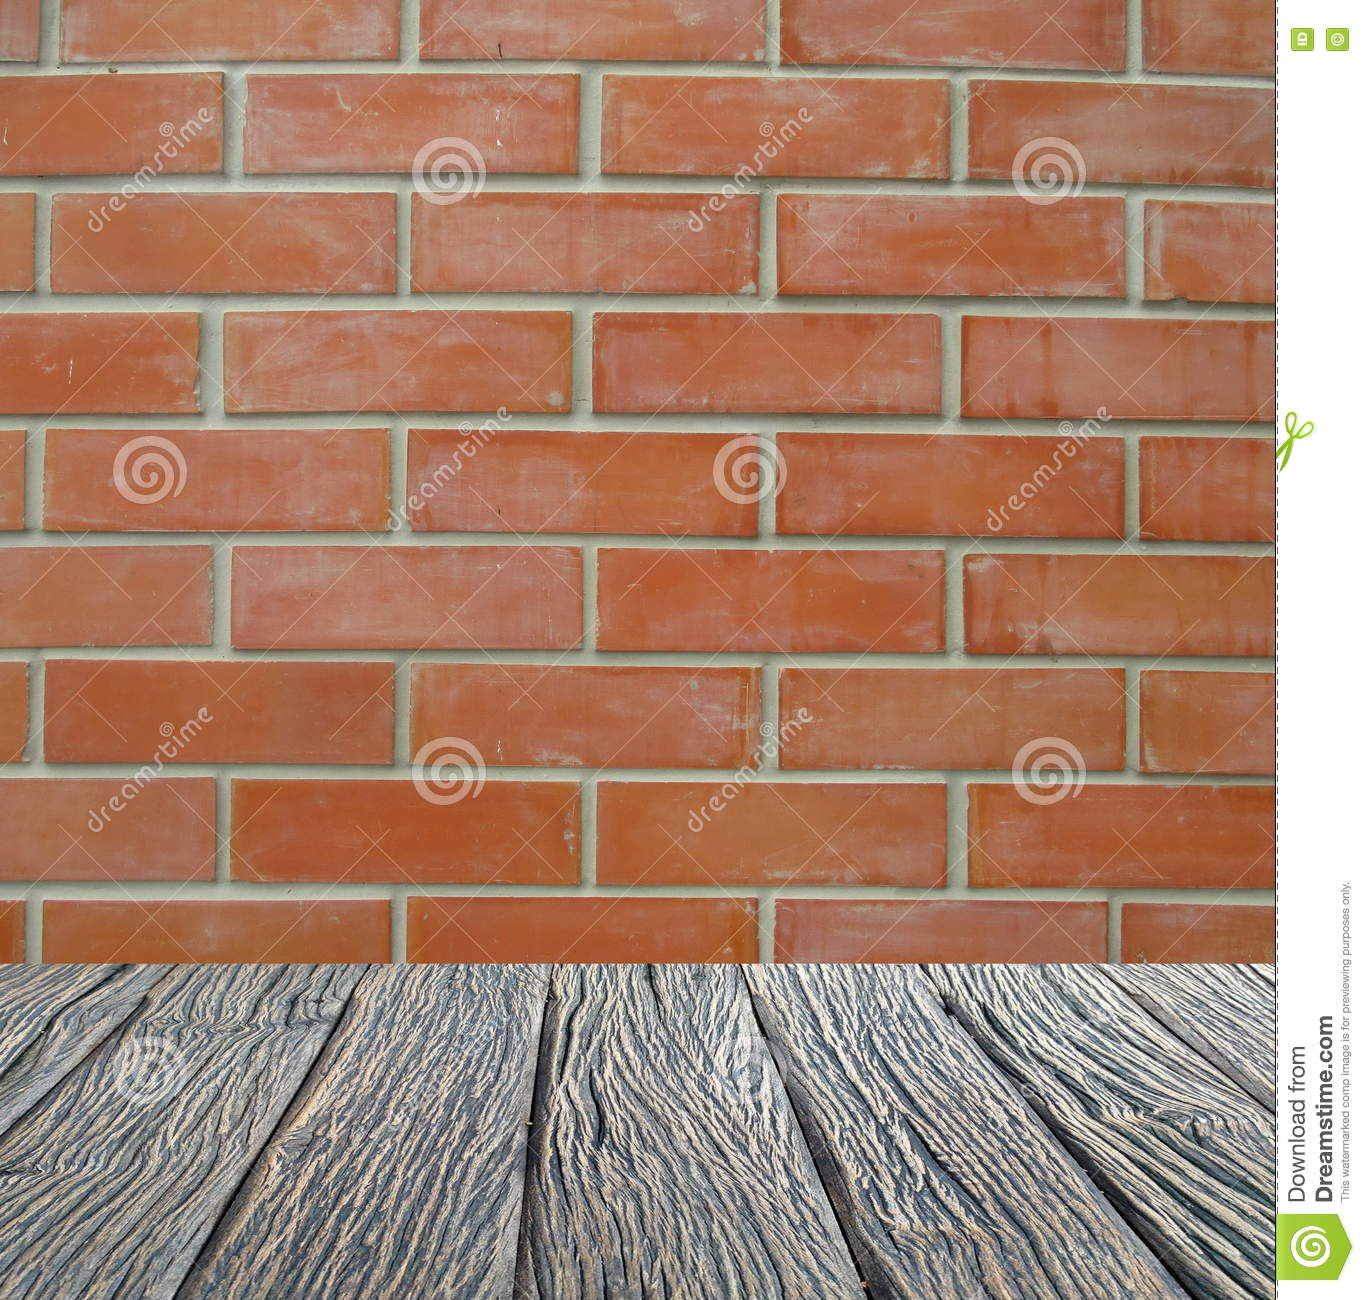 Empty Interior For Design Wood Floor Brick Wall Empty Room Space For Text And Picture Design Ideas And Style Stock Image Image Of Ideas Blue 81455421